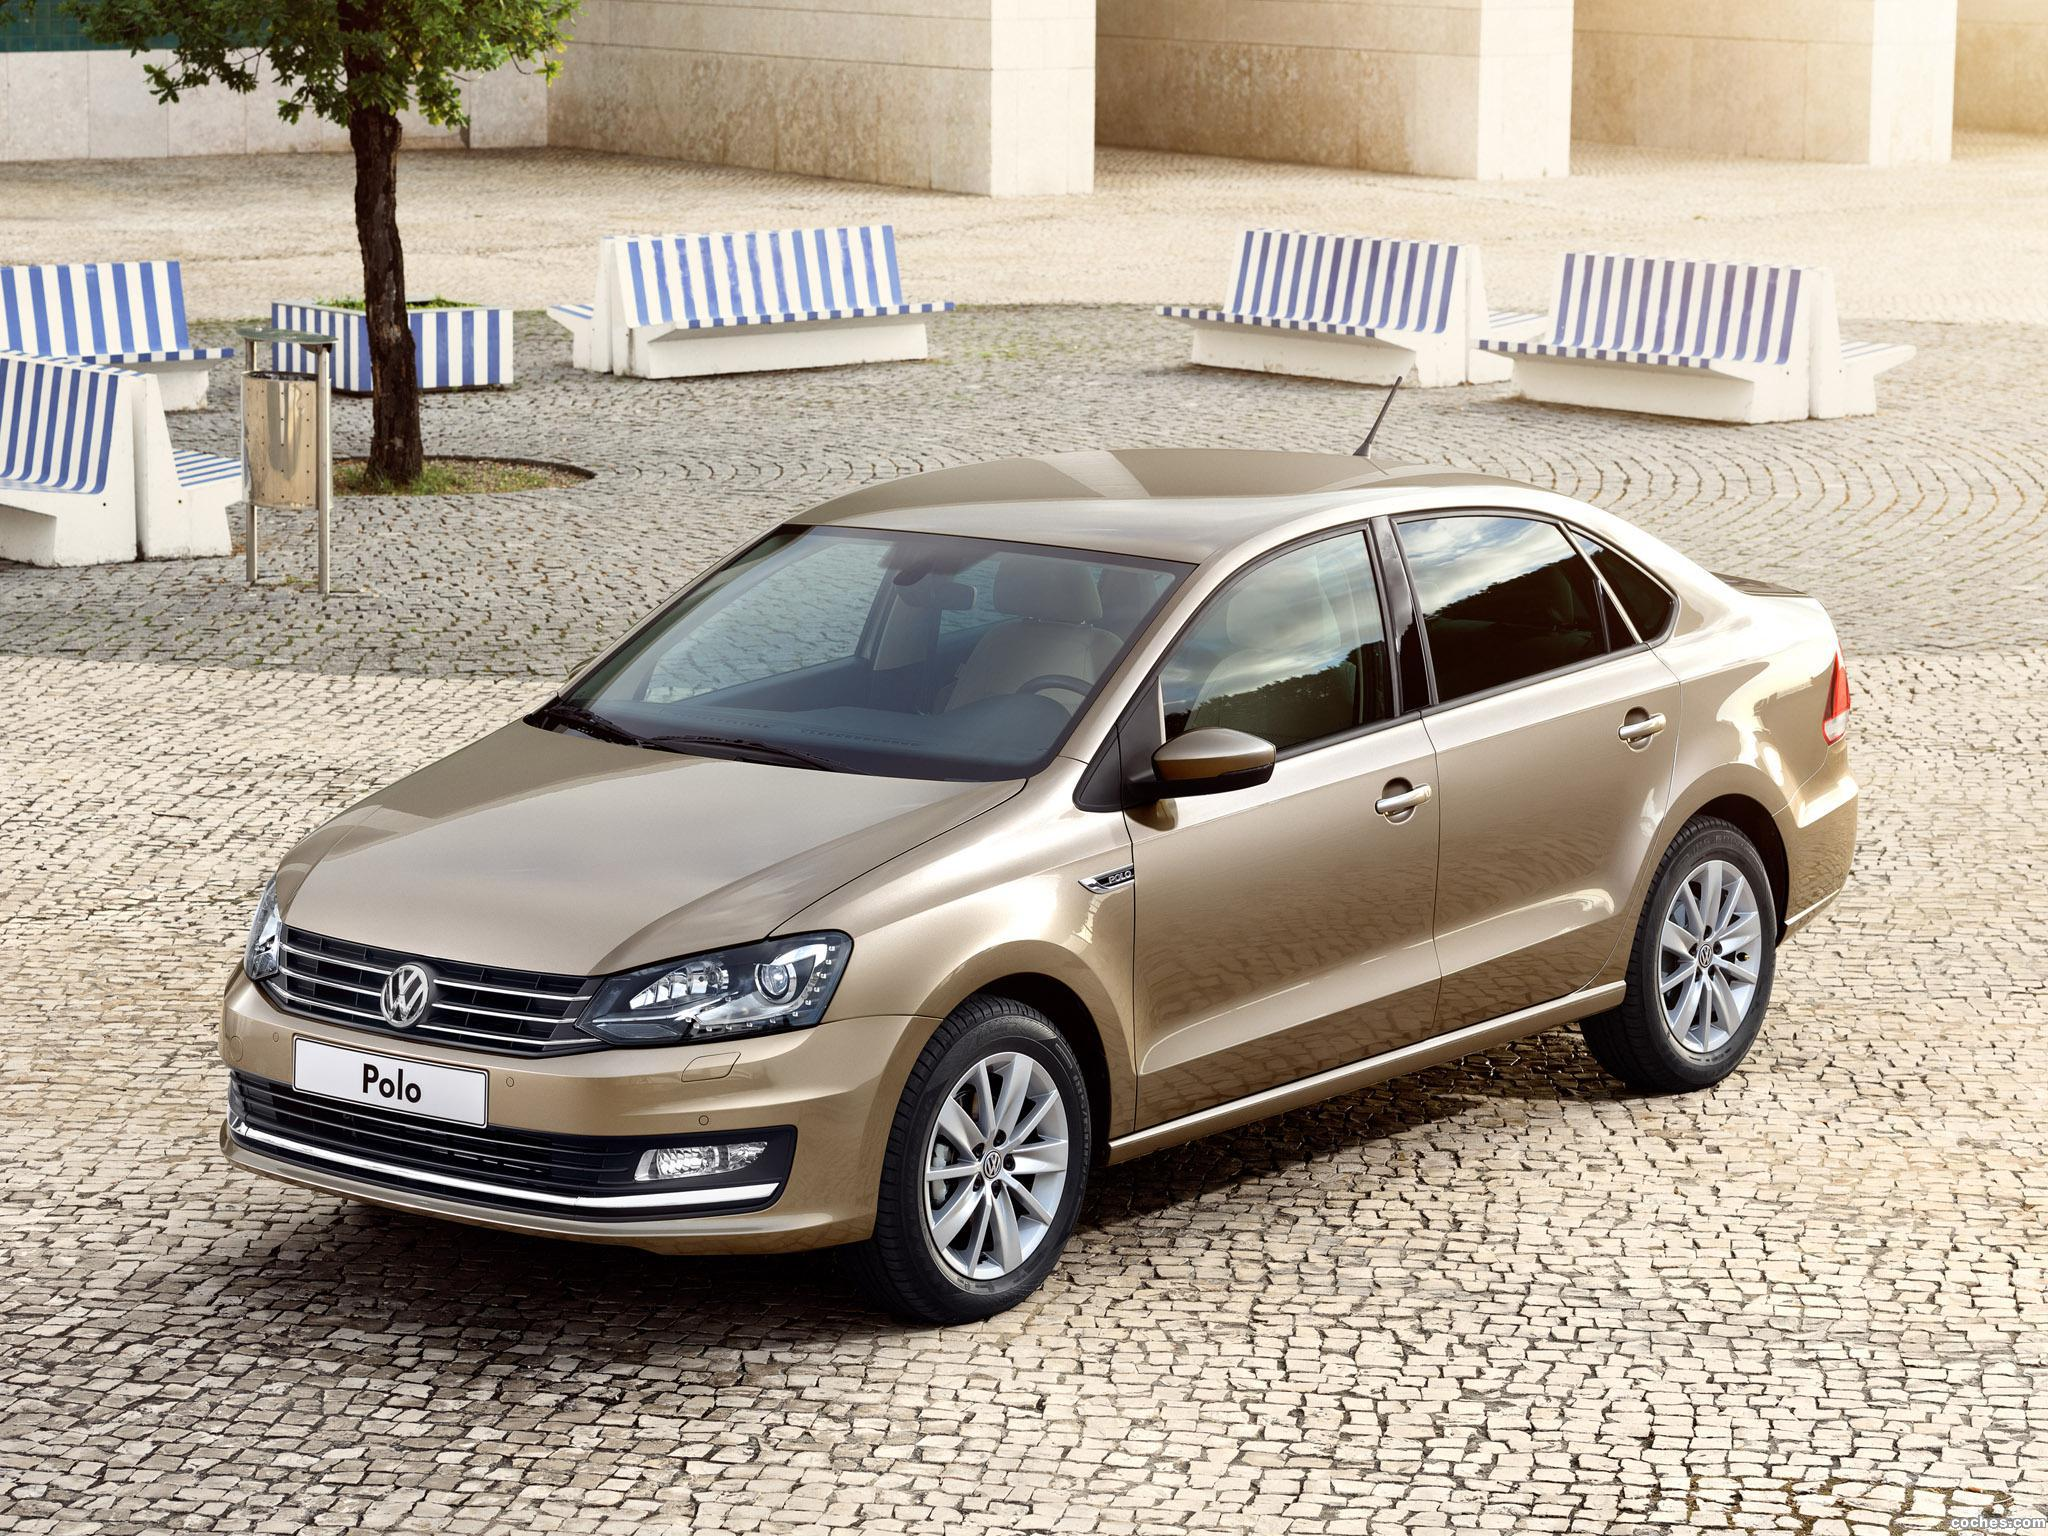 Foto 6 de Volkswagen Polo Sedan 2015